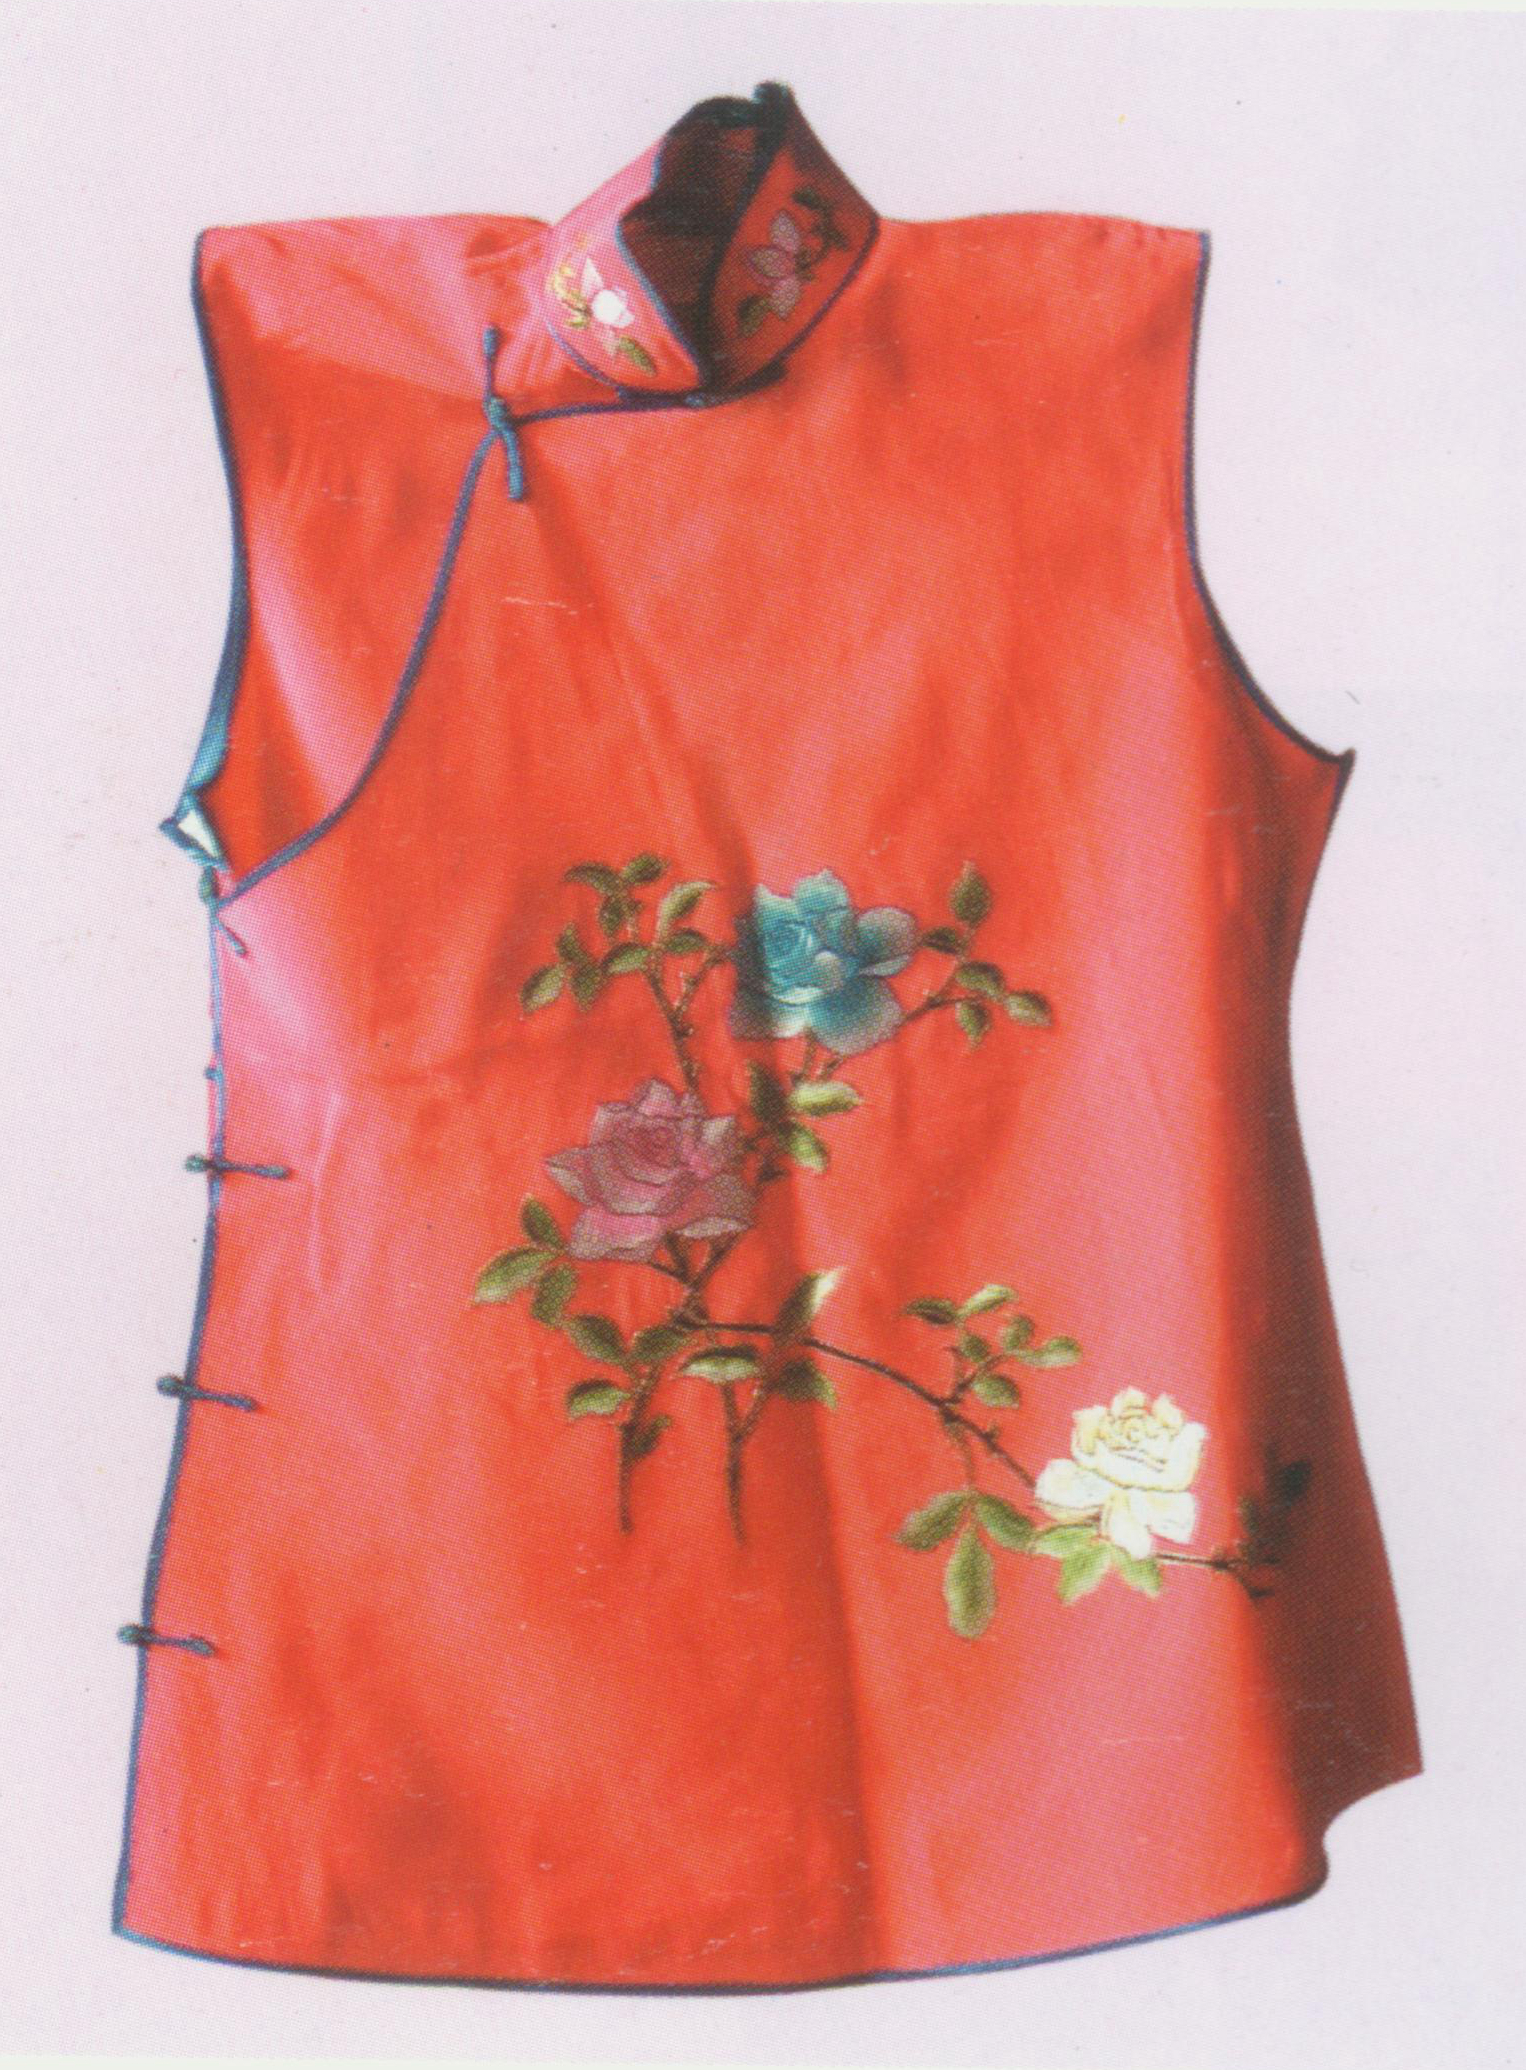 """Small Red Waistcoat Costume,  also known as """"red livery for solders"""" ( hong zu kan ). It has a round neck and a distinctive Chinese jacket buttons down the front (i.e.  duijin ). It is embroidered with flowers in round frame and its matching frets, ancient coins and dragons. It is made of red satin and edged with coloured-cloth. The inside surface which is made of a yellow cloth with black tiger-skin pattern can be turned outwards as the outside surface – in other words, the waistcoat is a reversible. The small red waistcoat is usually worn by walk-on roles, such as Xi Xiaojun in  The Snow Jade Cup  and Da Gui in  The Nine-Lotus Lattern ."""